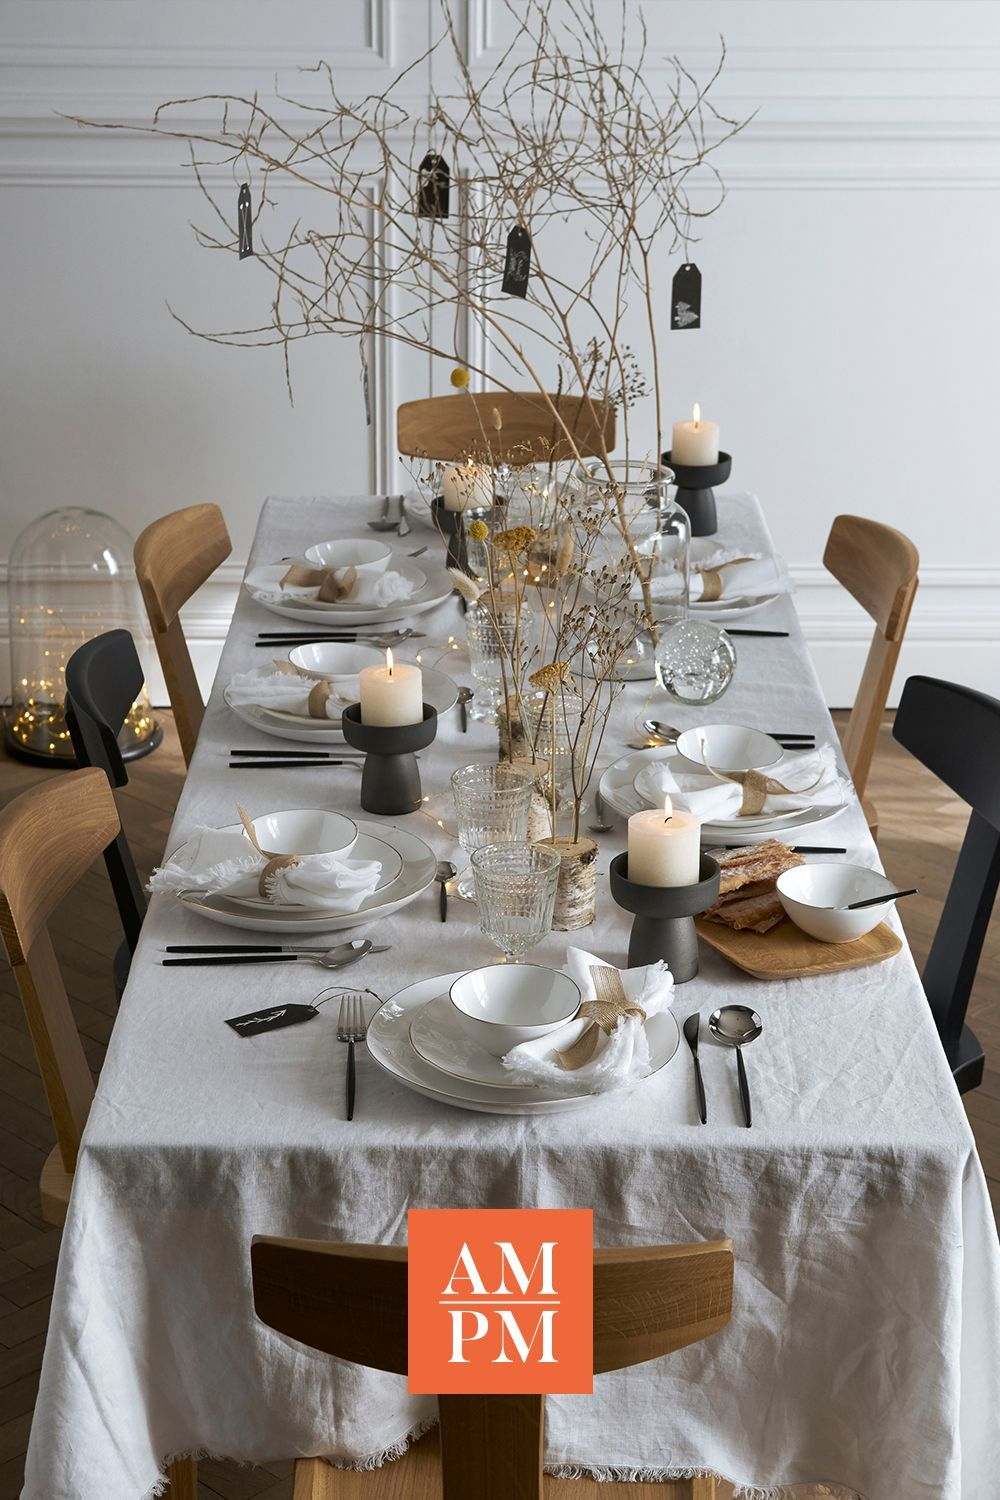 Beautiful French Country Dining Room Table Decor Ideas 31 Coups De Lumiere 8211 Amb In 2020 Dining Room Table Decor Vintage Dining Table French Country Dining Room